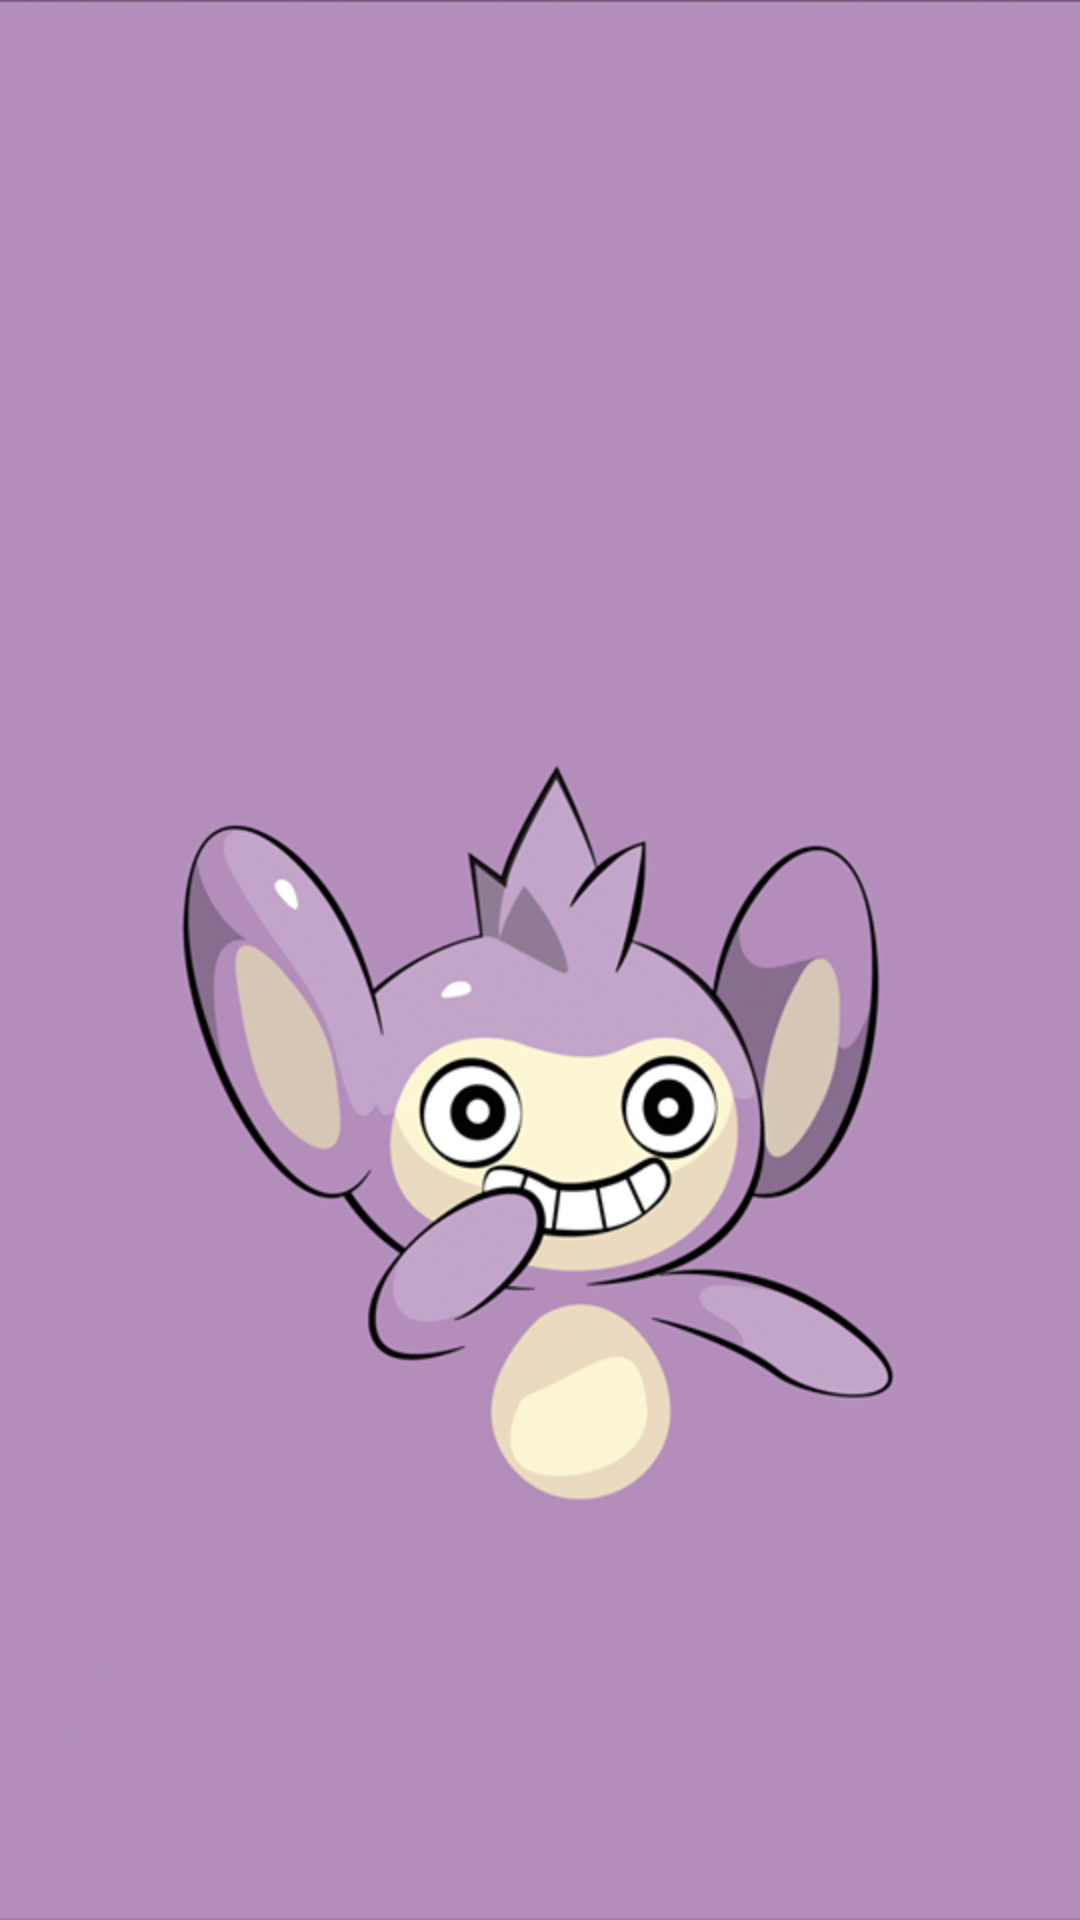 Download Aipom 1080 x 1920 Wallpapers - 4678853 - POKEMON ...